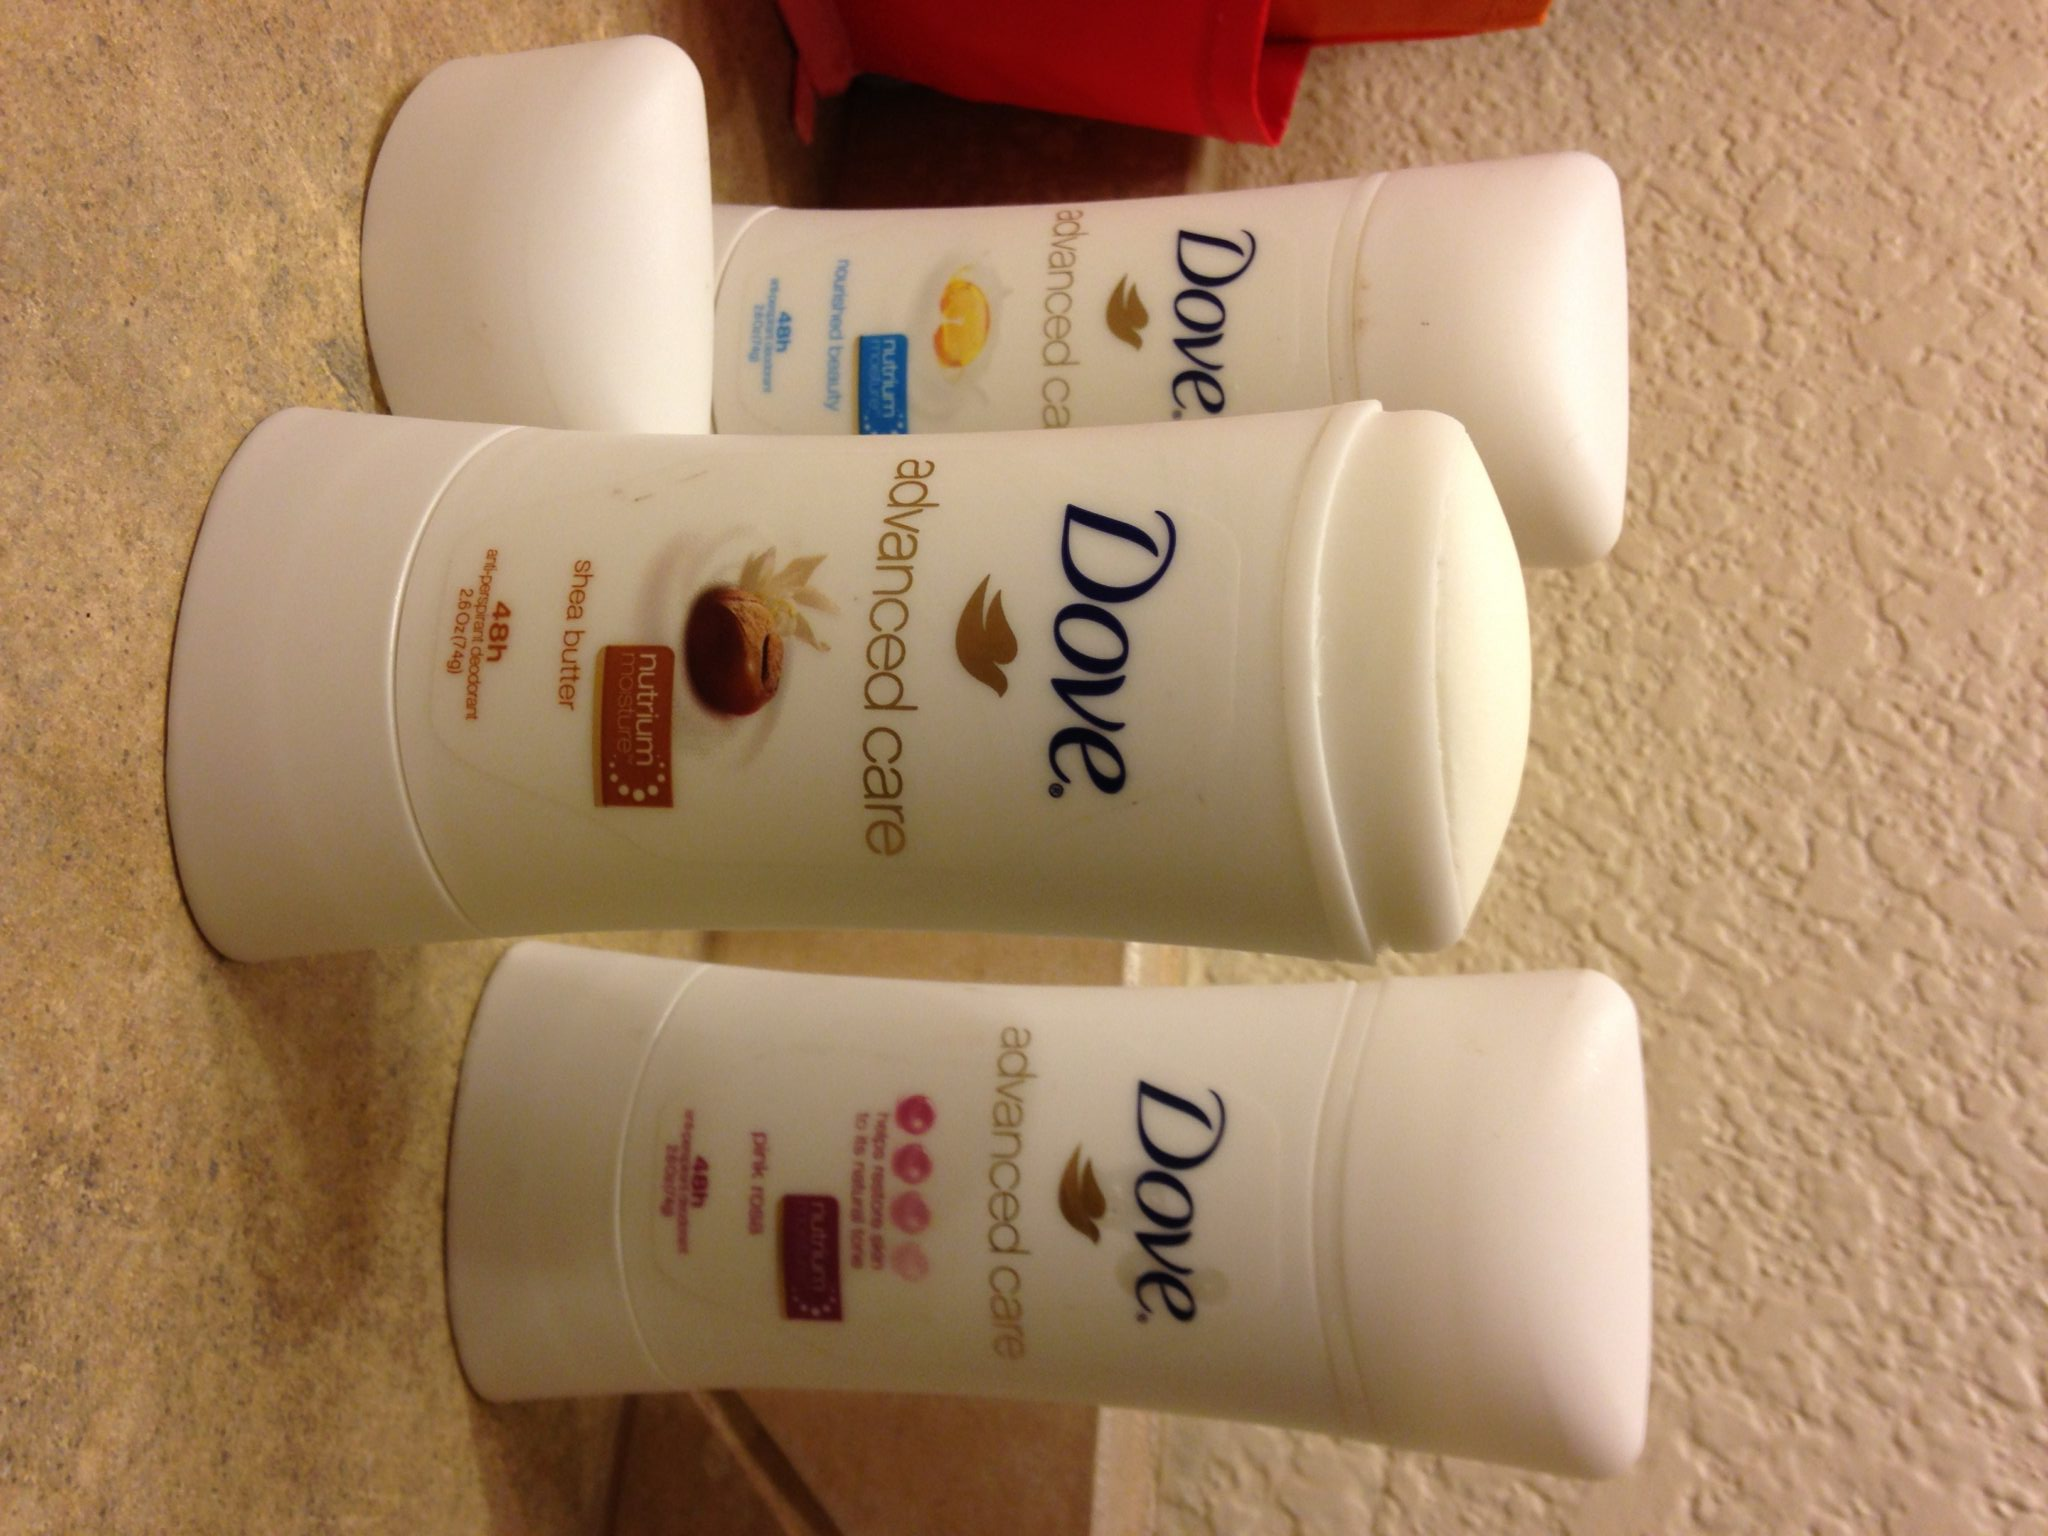 Going Sleeveless with Dove Advanced Care Deodorant